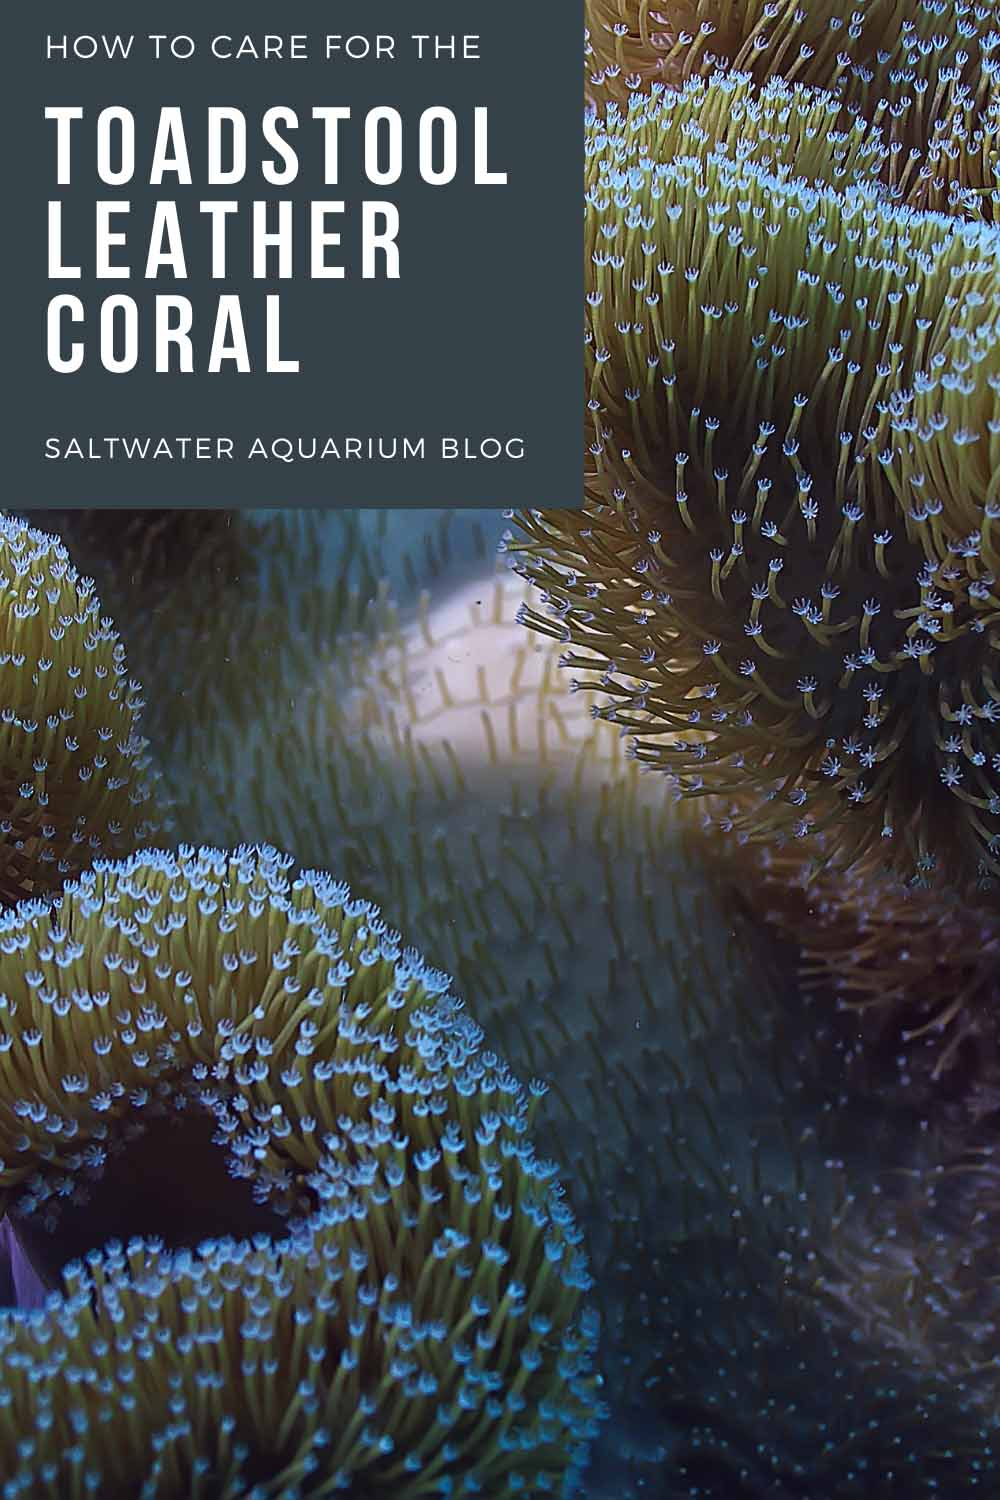 Toadstool coral care